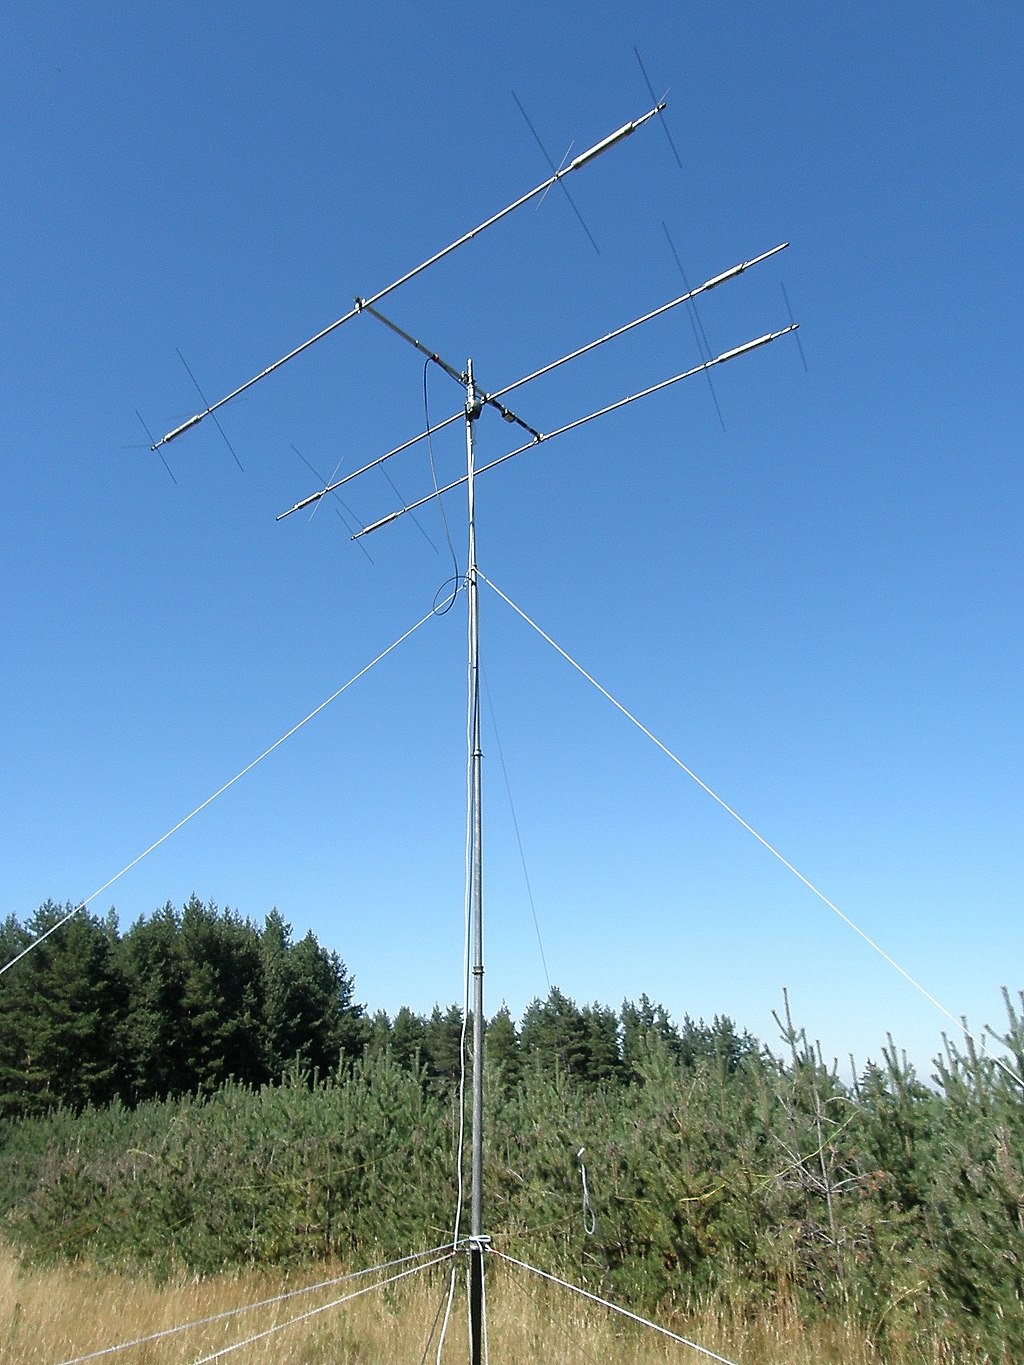 English: Yagi Antenna; 3 elements; operates on multiple bands: 14 MHz, 18 MHz, 21 MHz, 24 MHz, 28 MHz. MA-5B, Cushcraft Multi-Band Beam.